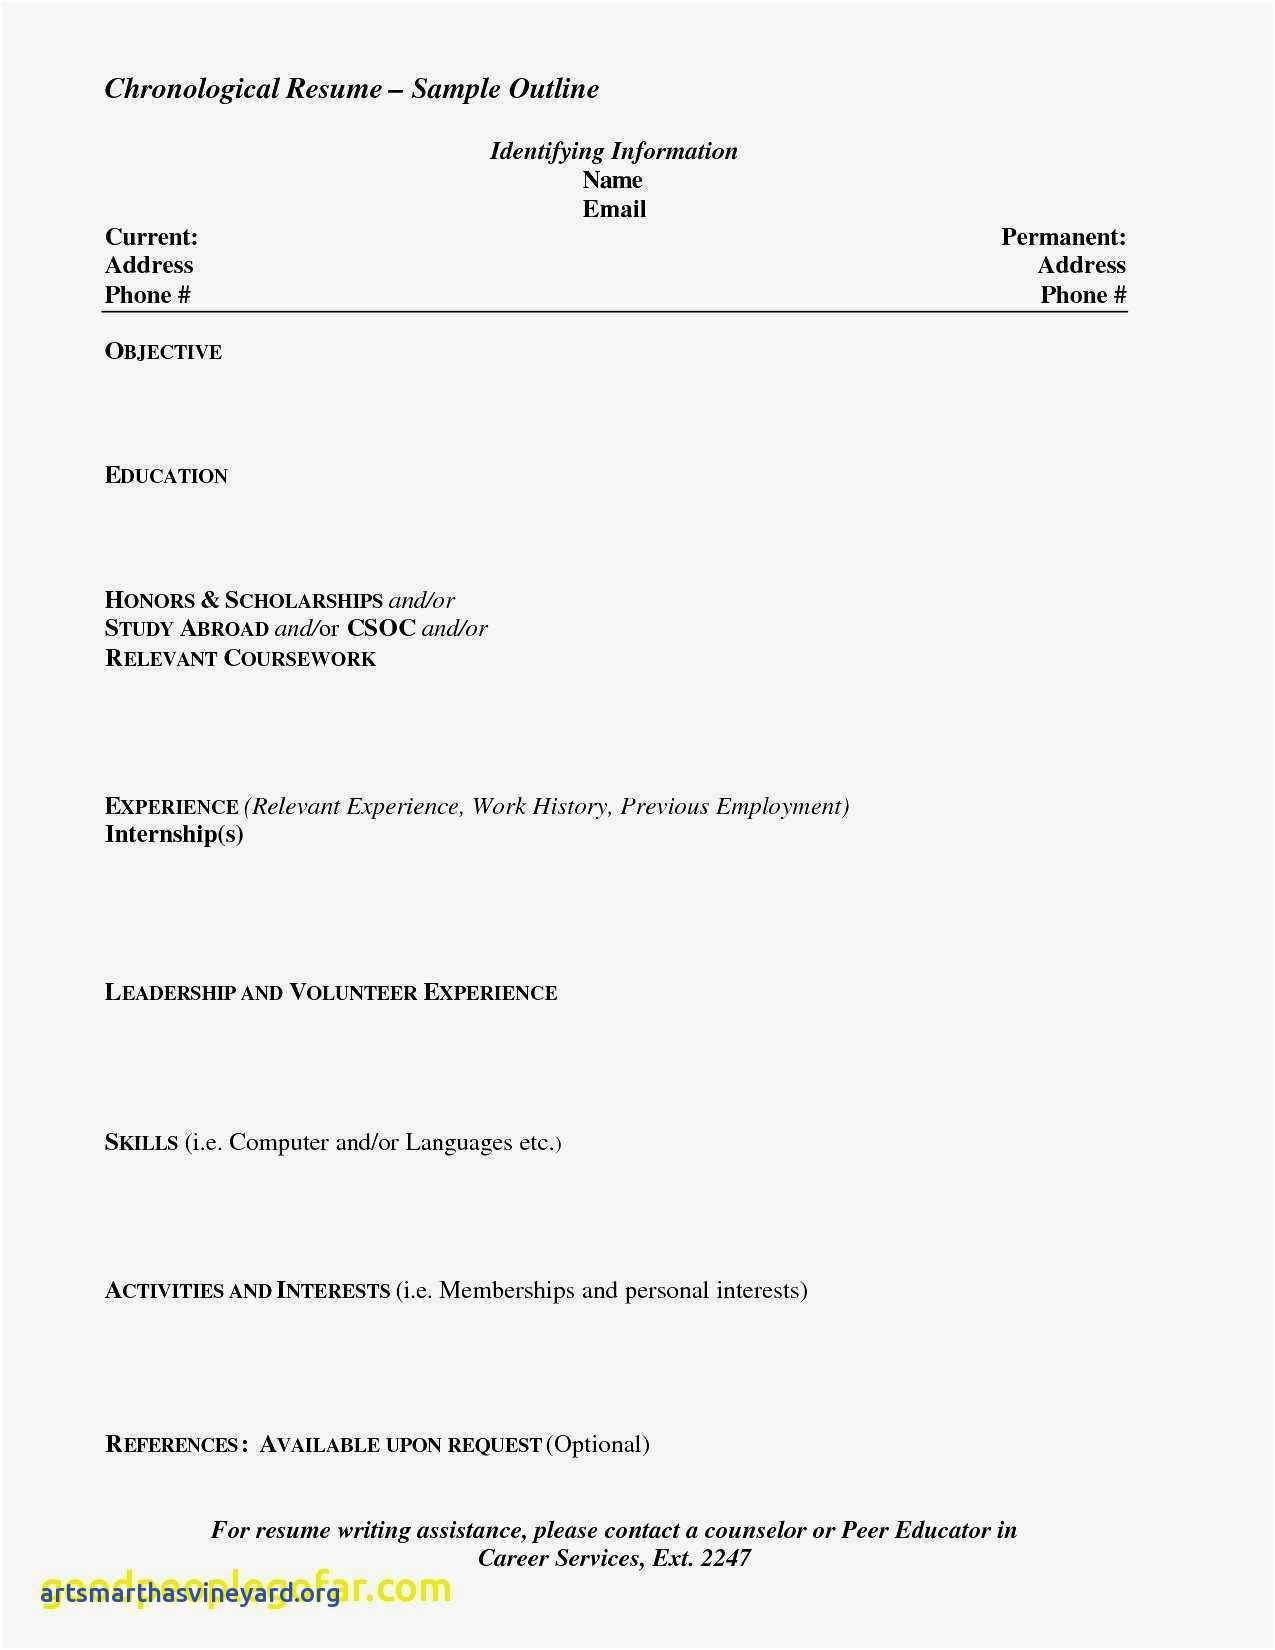 Resume Email Address - What Should Be A Resume for A Teenager Valid Unique Resume for